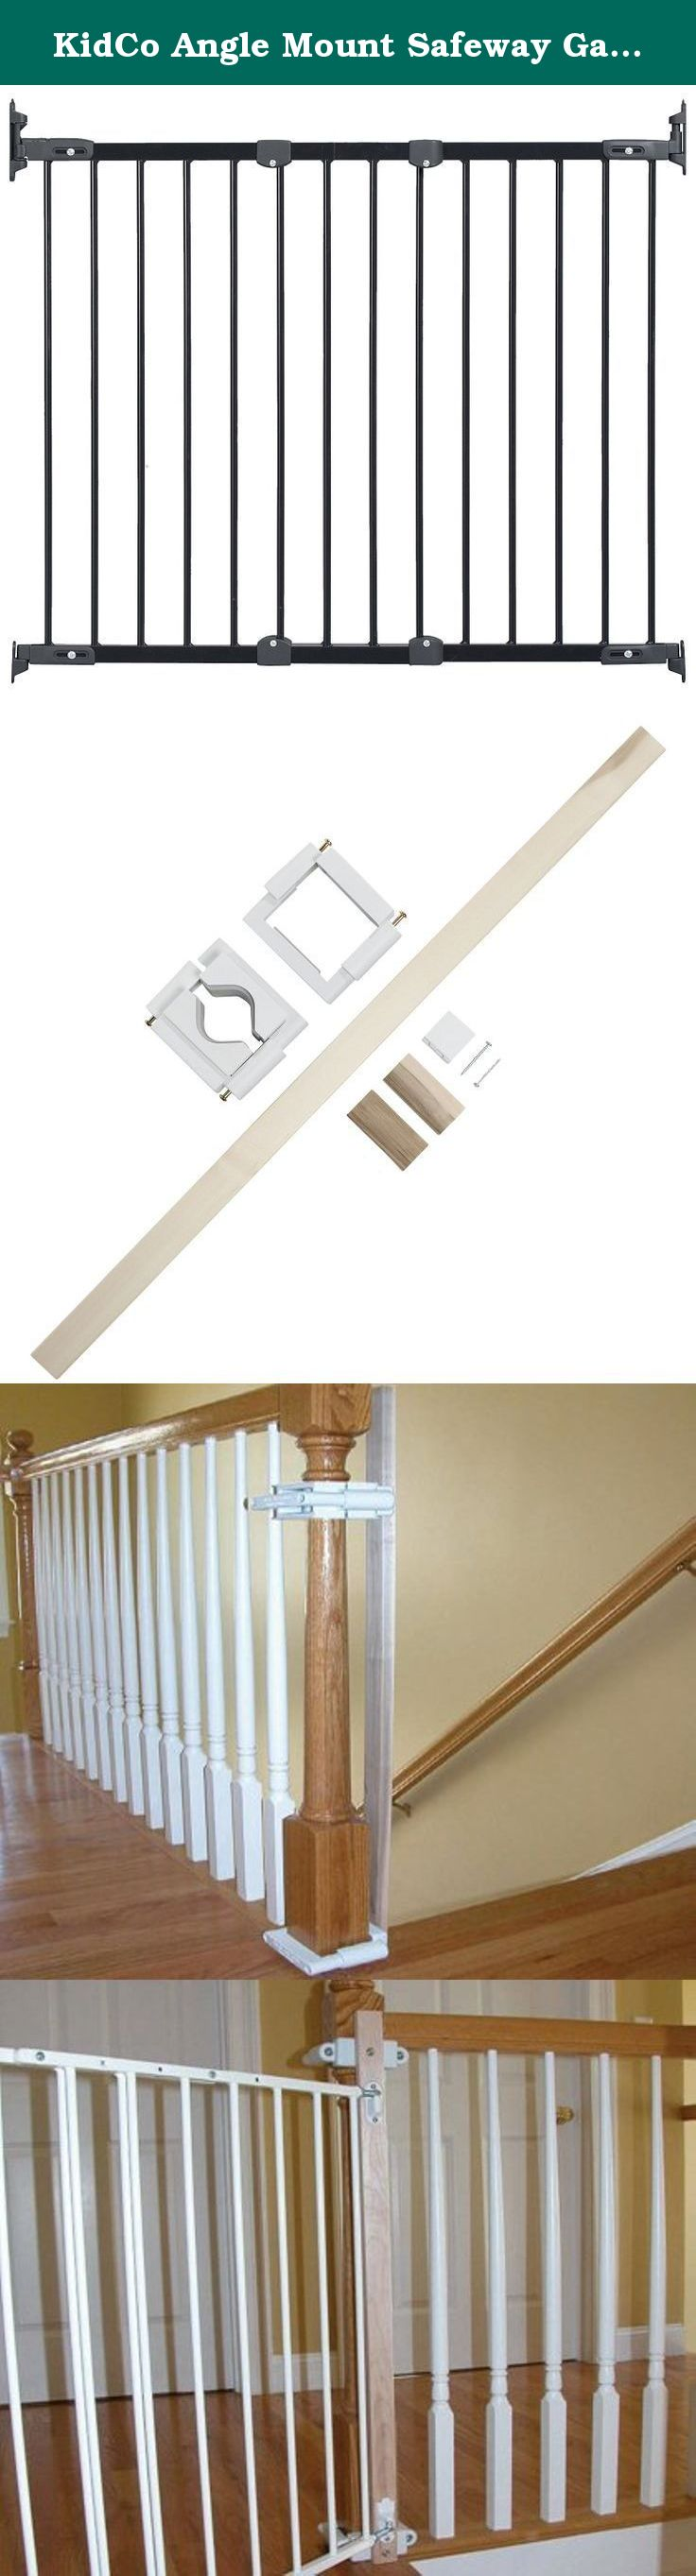 KidCo Angle Mount Safeway Gate   Black (Metal)   To With Stairway  Installation Kit